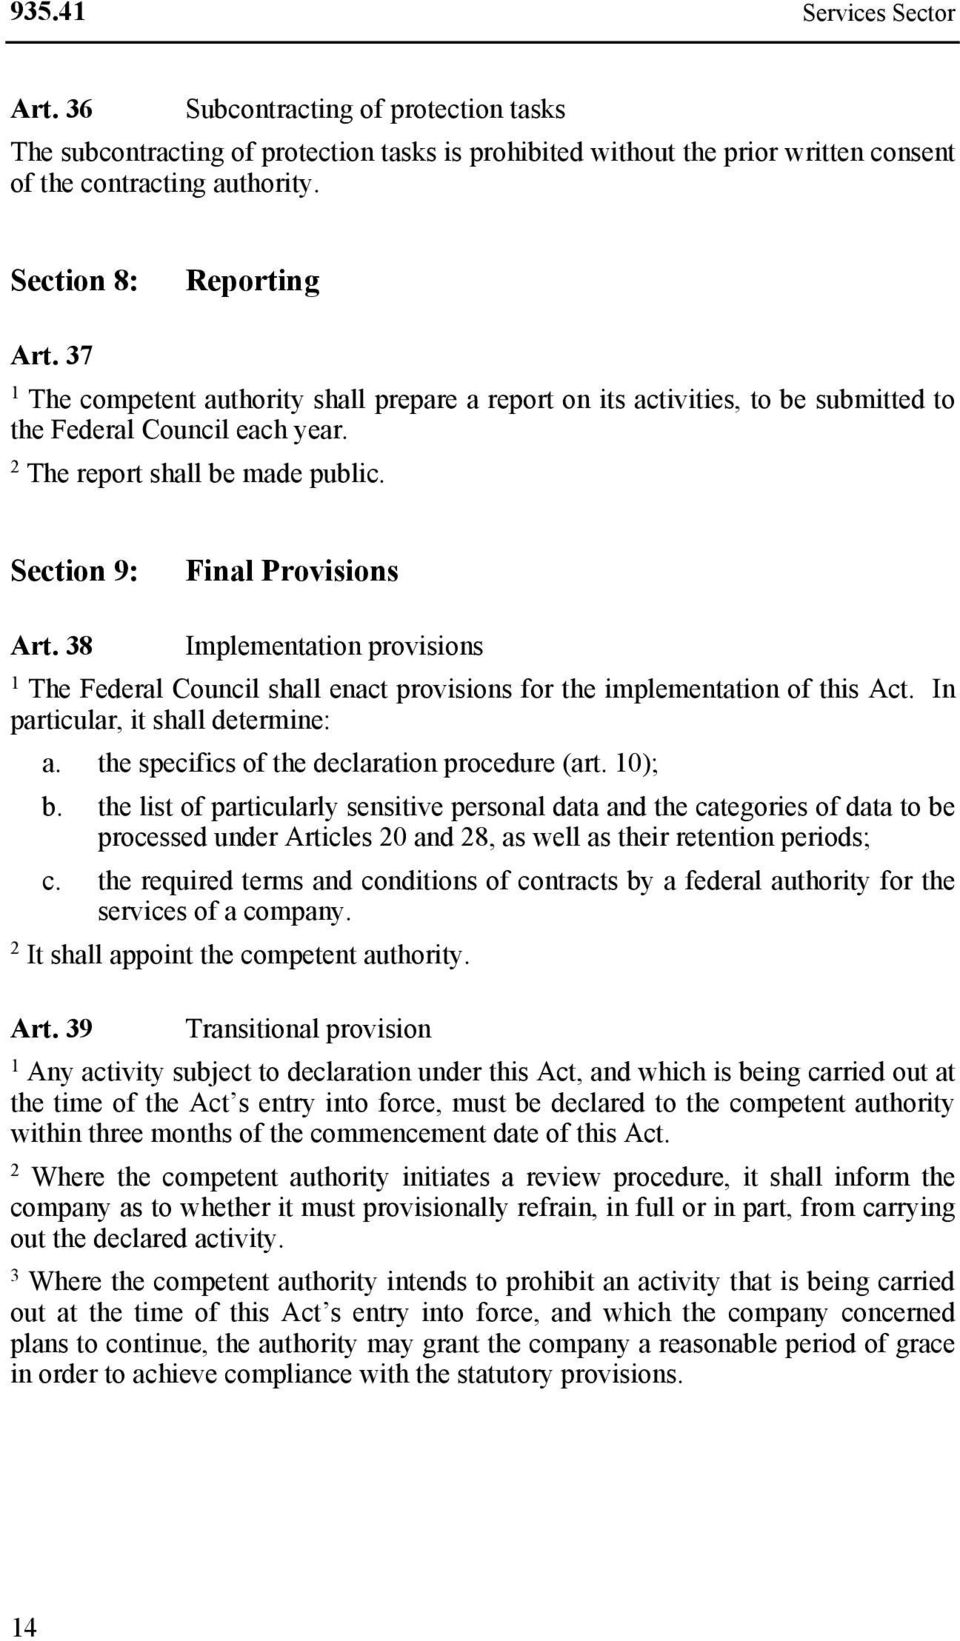 Section 9: Final Provisions Art. 8 Implementation provisions The Federal Council shall enact provisions for the implementation of this Act. In particular, it shall determine: a.